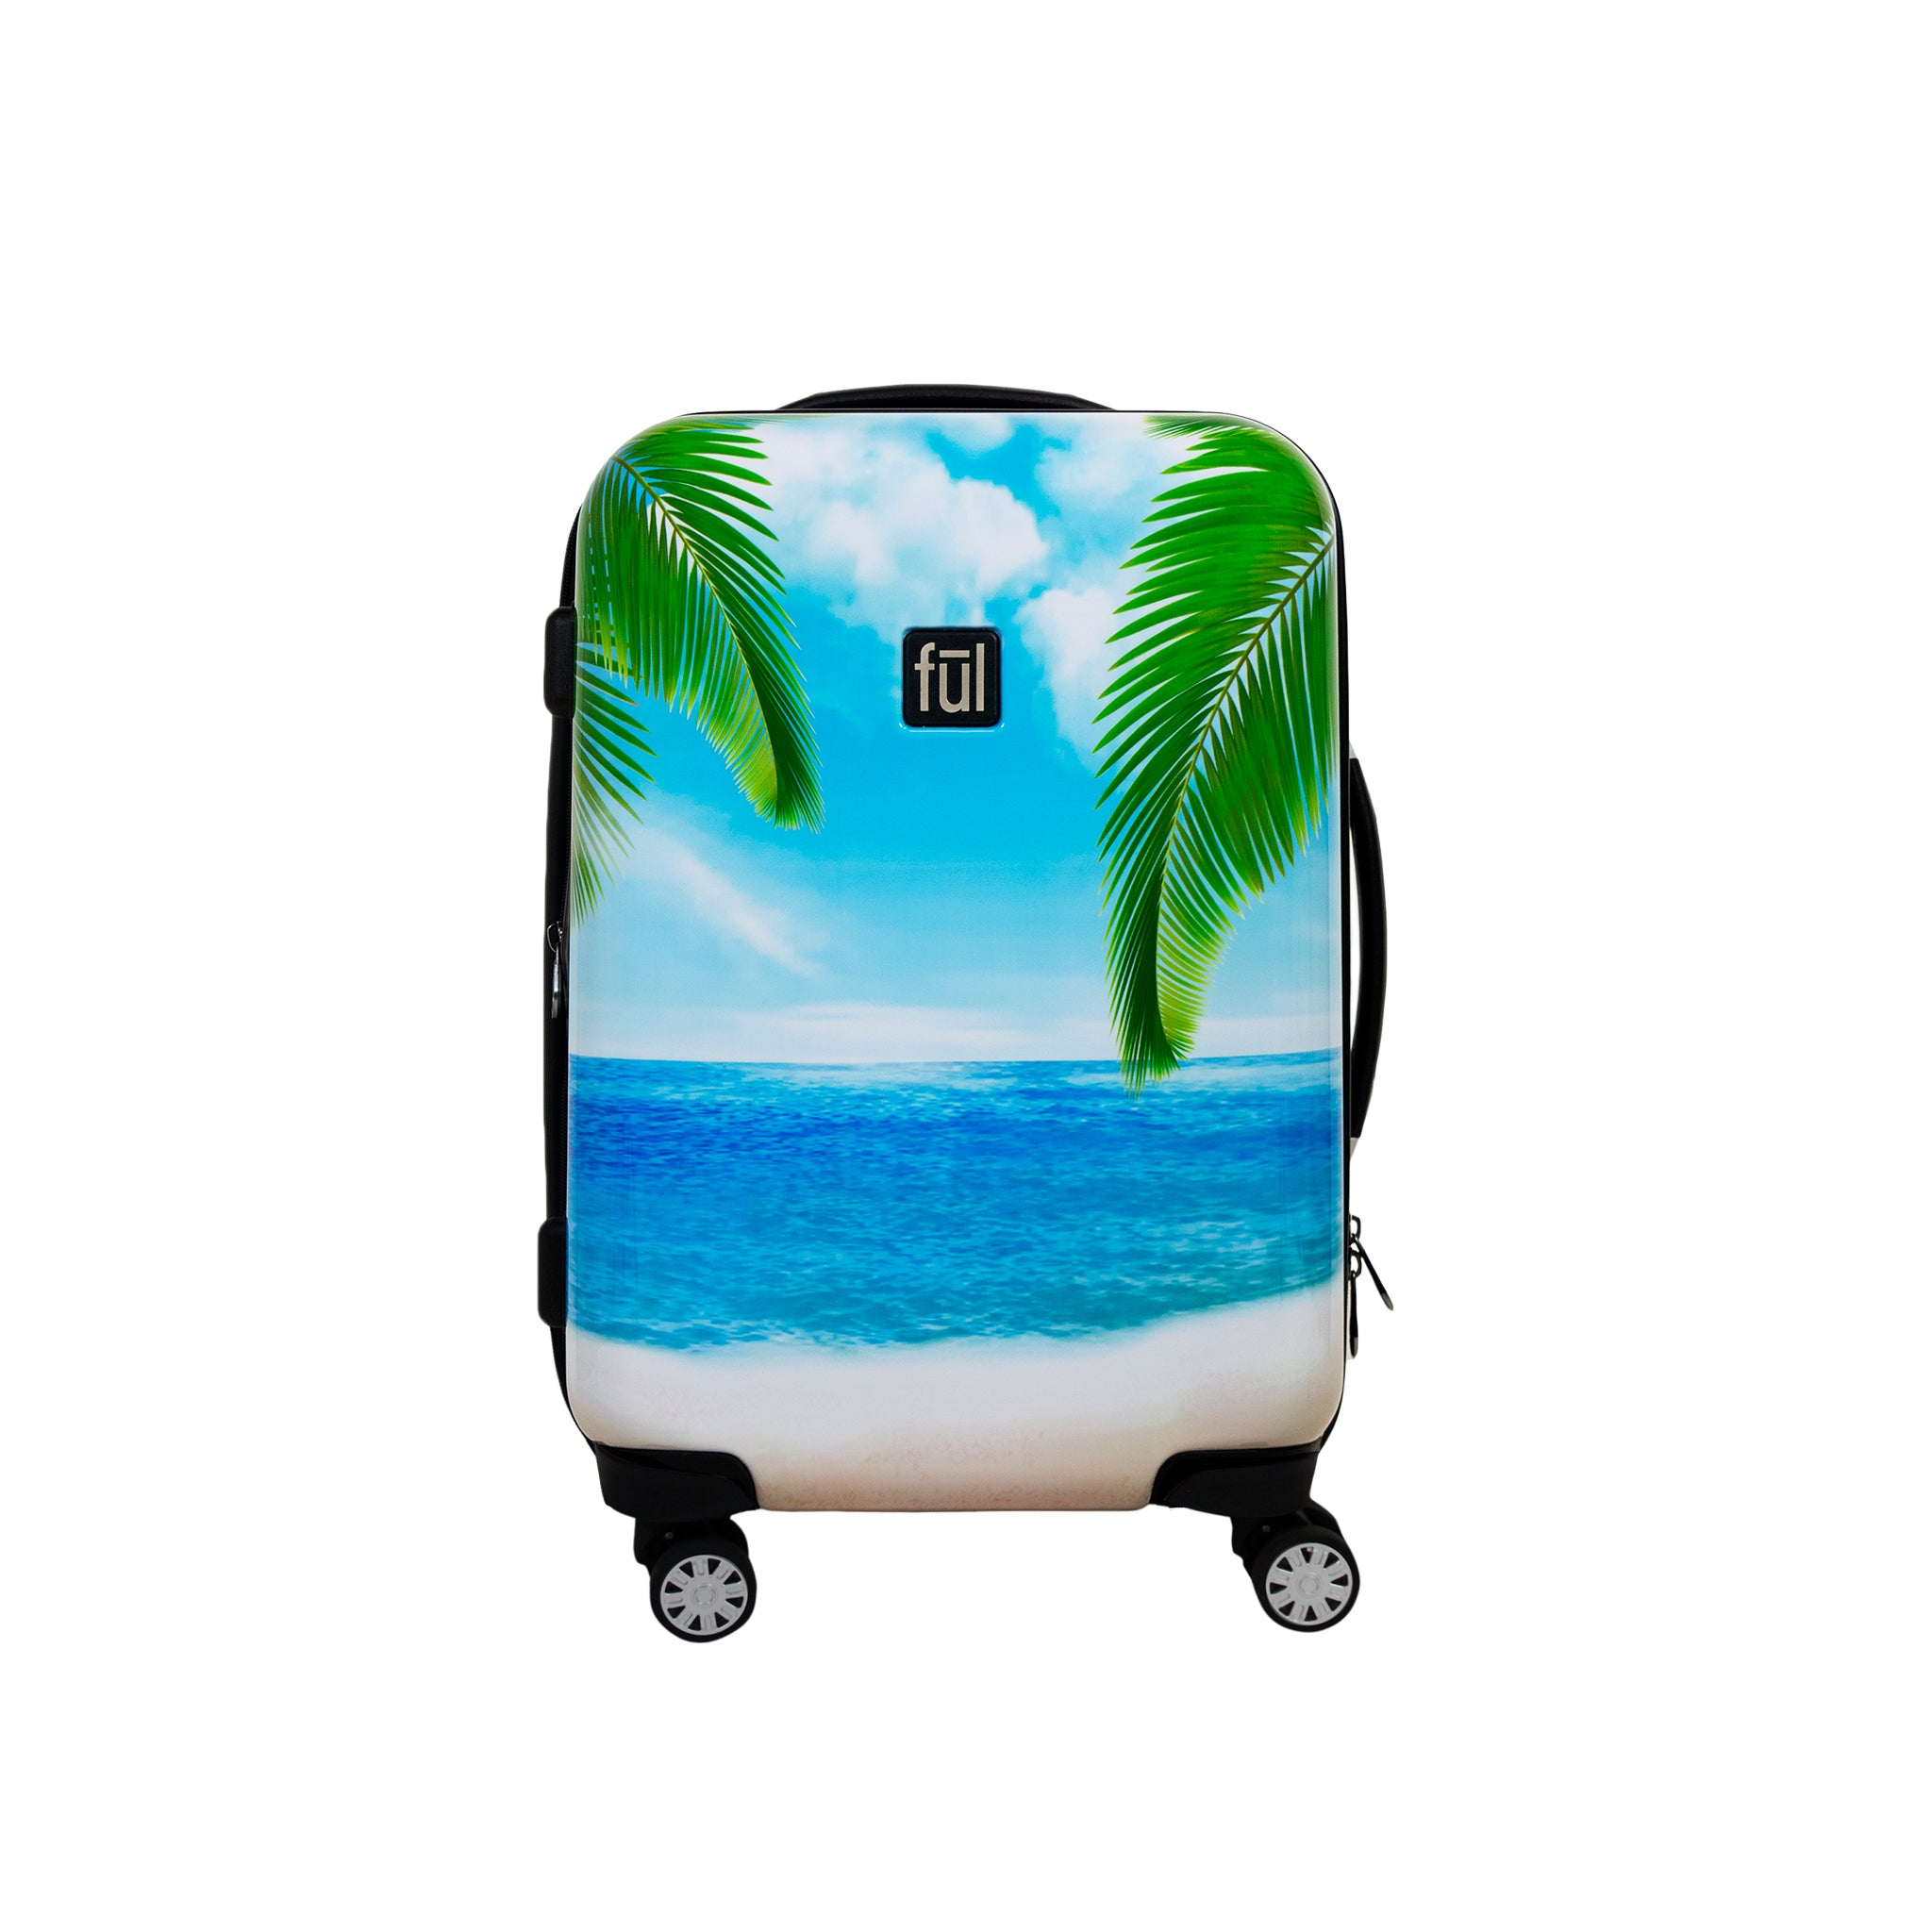 Tropical Beach 21in Hard Sided Rolling Luggage